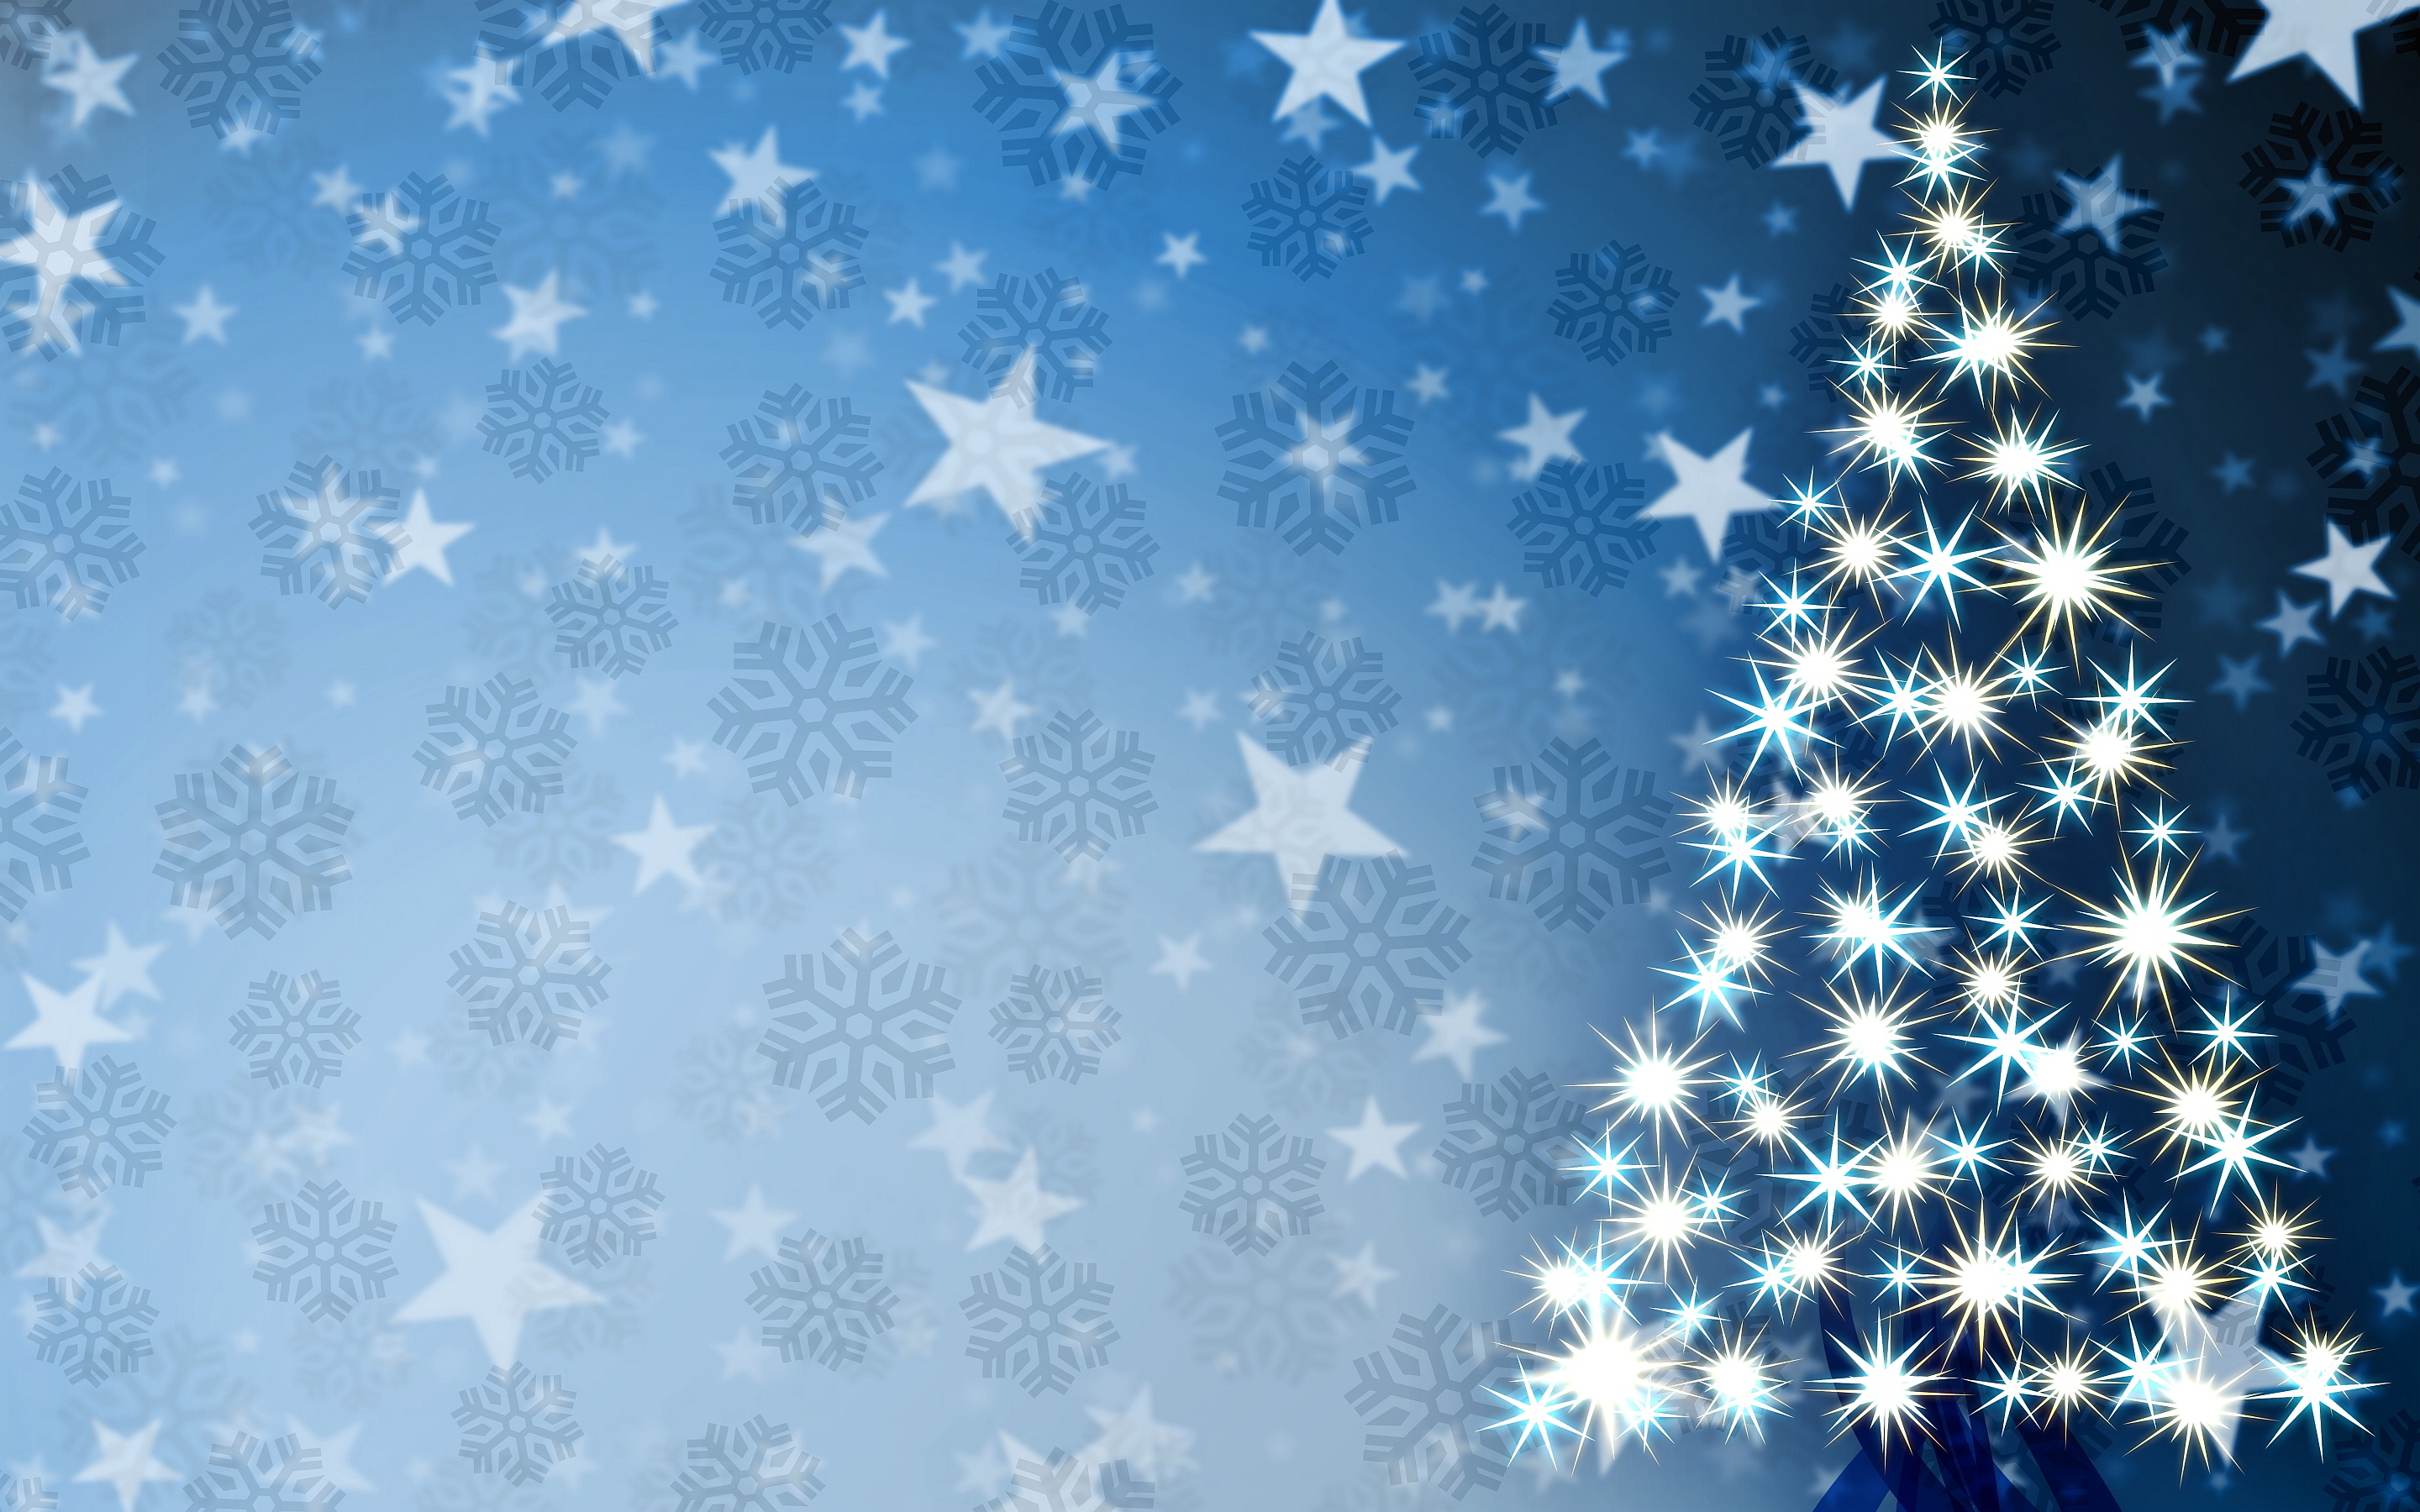 Snow Merry Christmas Wallpaper Hd Star Merry Christmas Wallpaper New